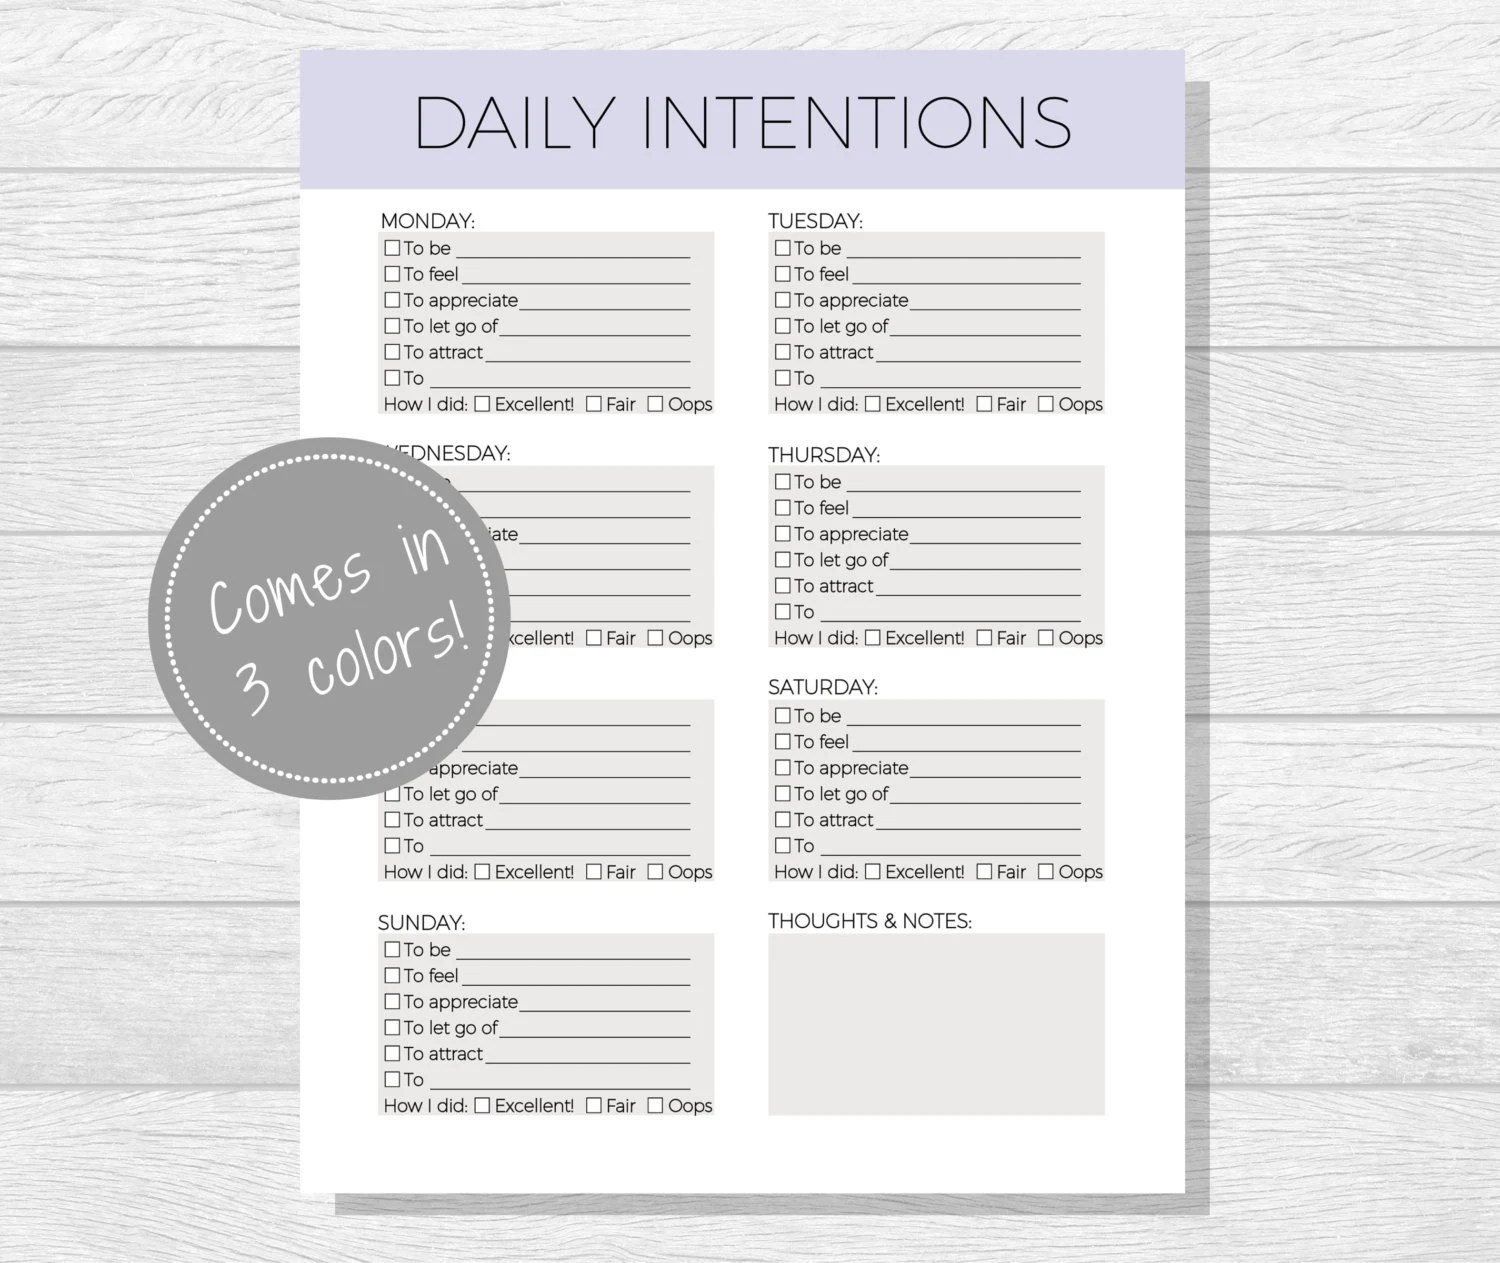 Daily Intentions Printable Daily Affirmations Daily Goal